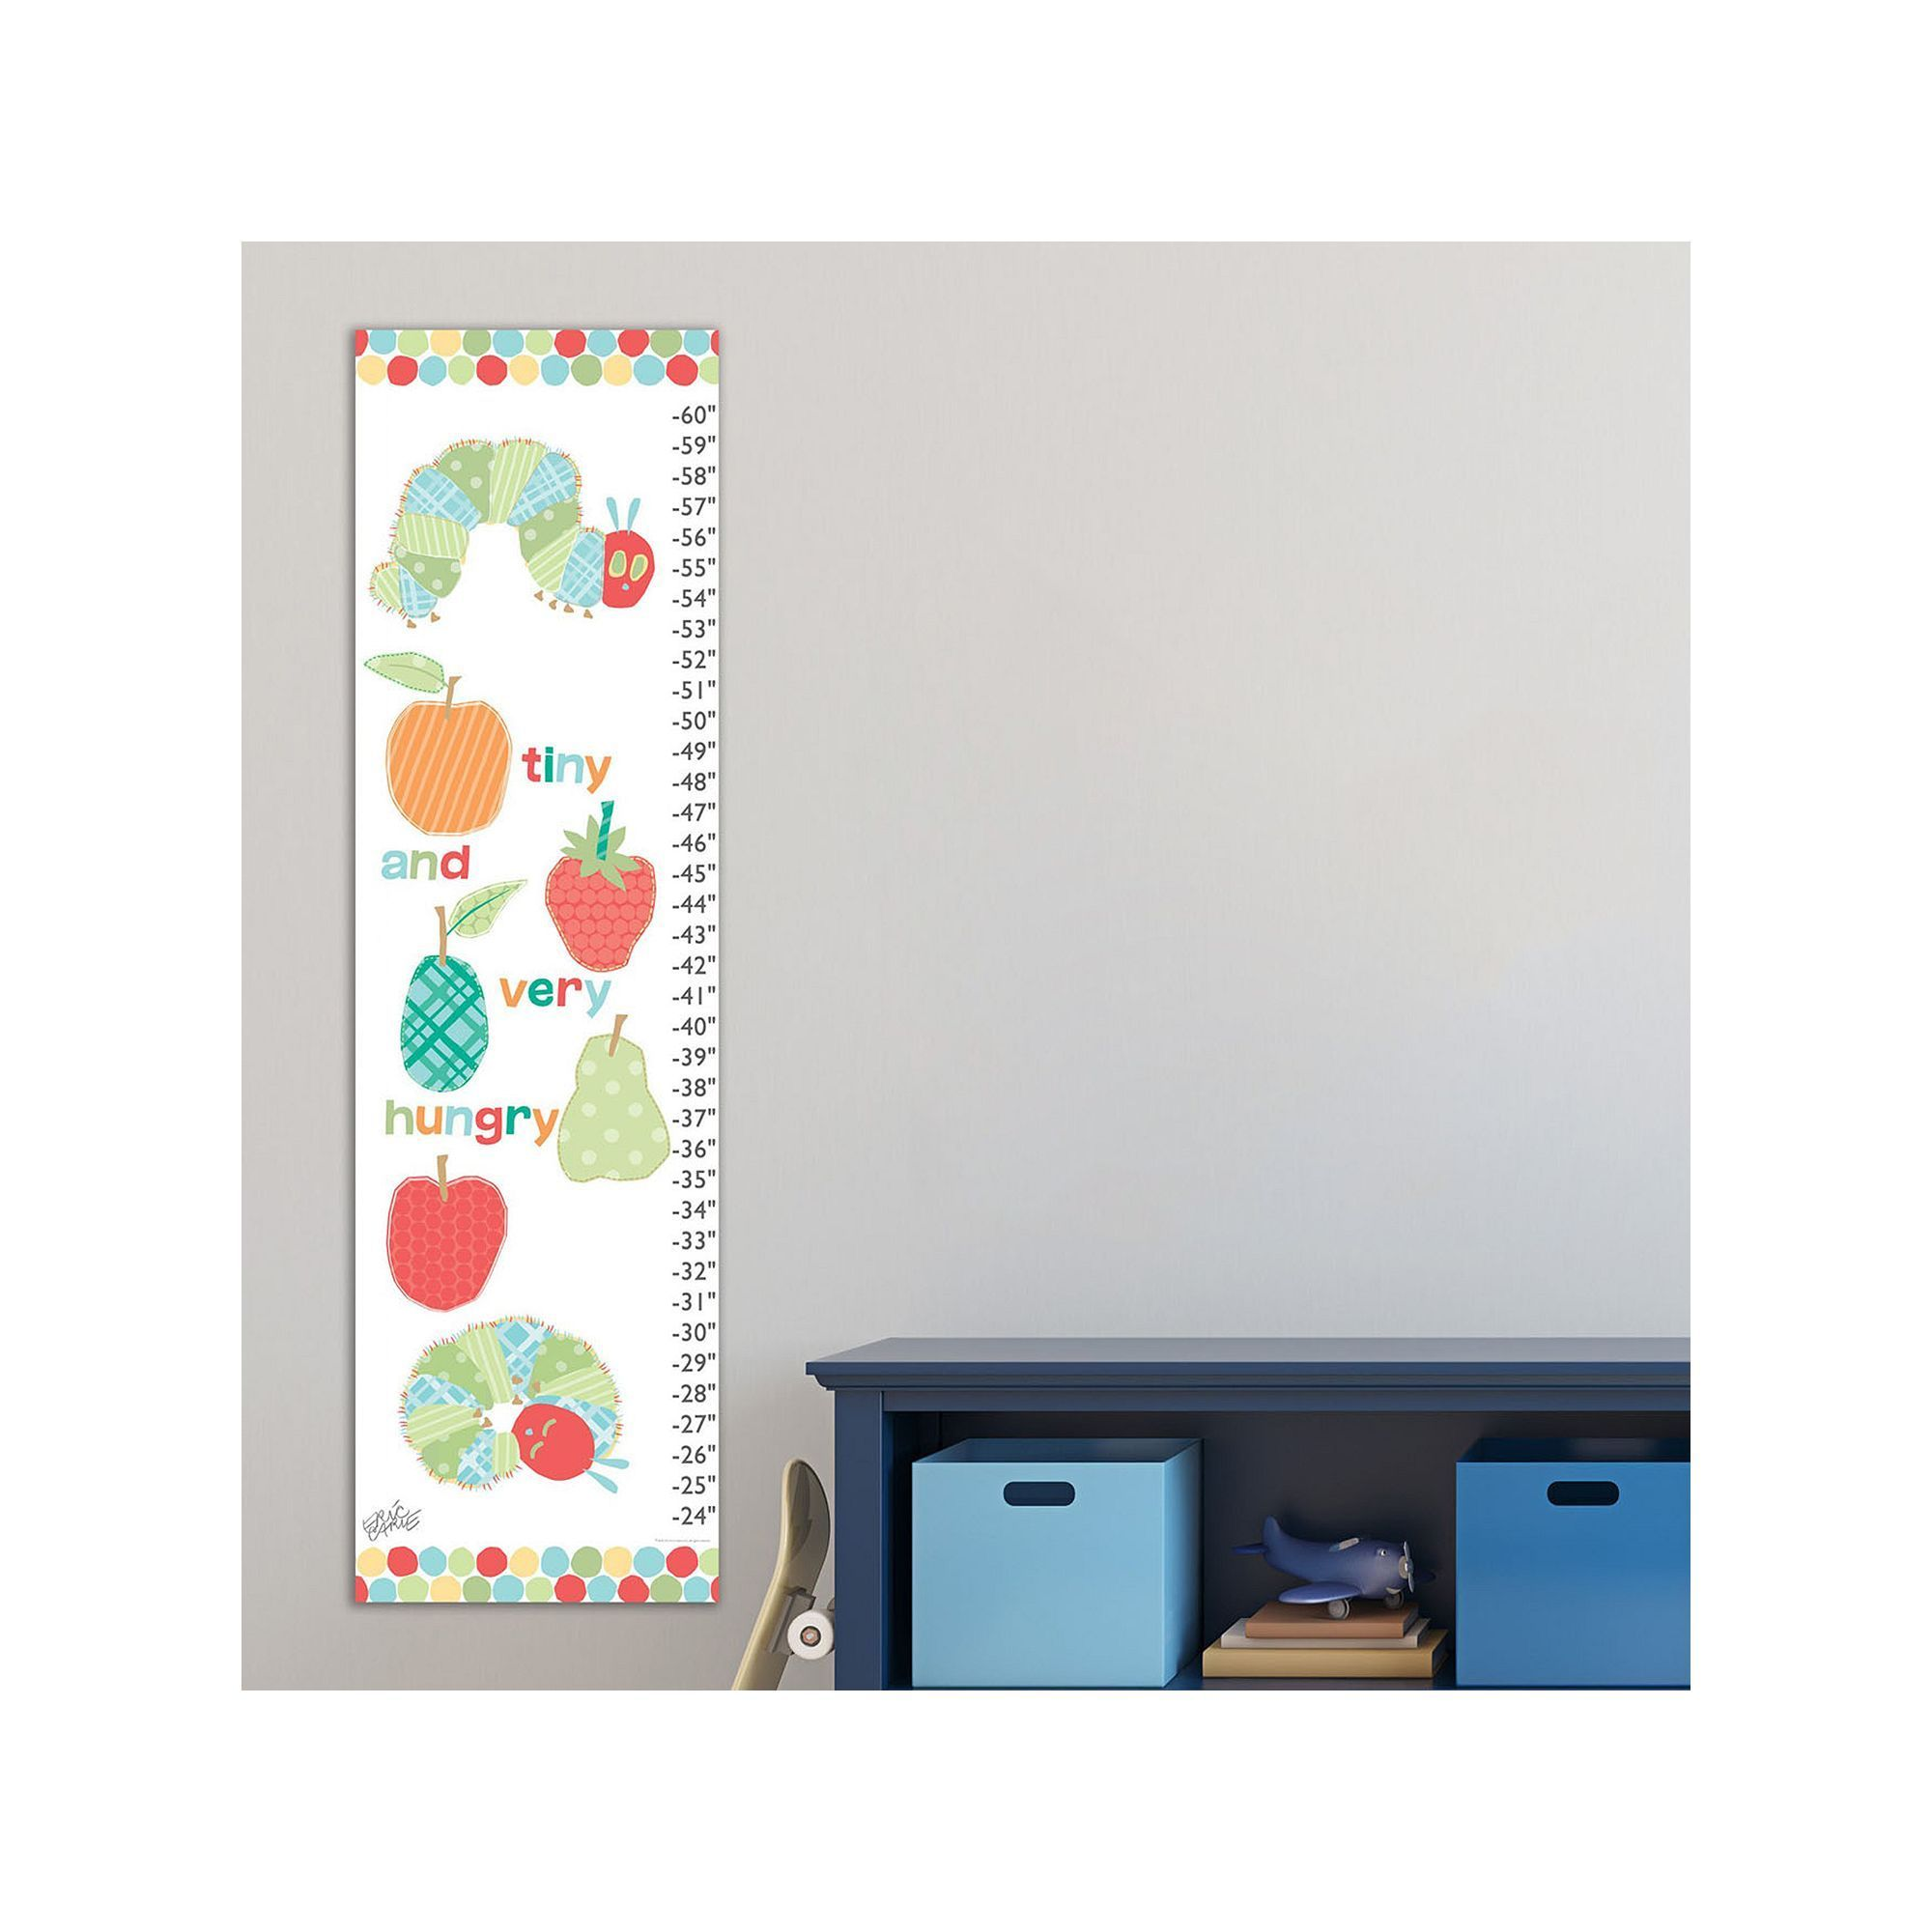 Marmont hill eric carle tiny and hungry catepillars wall growth marmont hill eric carle tiny and hungry catepillars wall growth chart multicolor nvjuhfo Choice Image